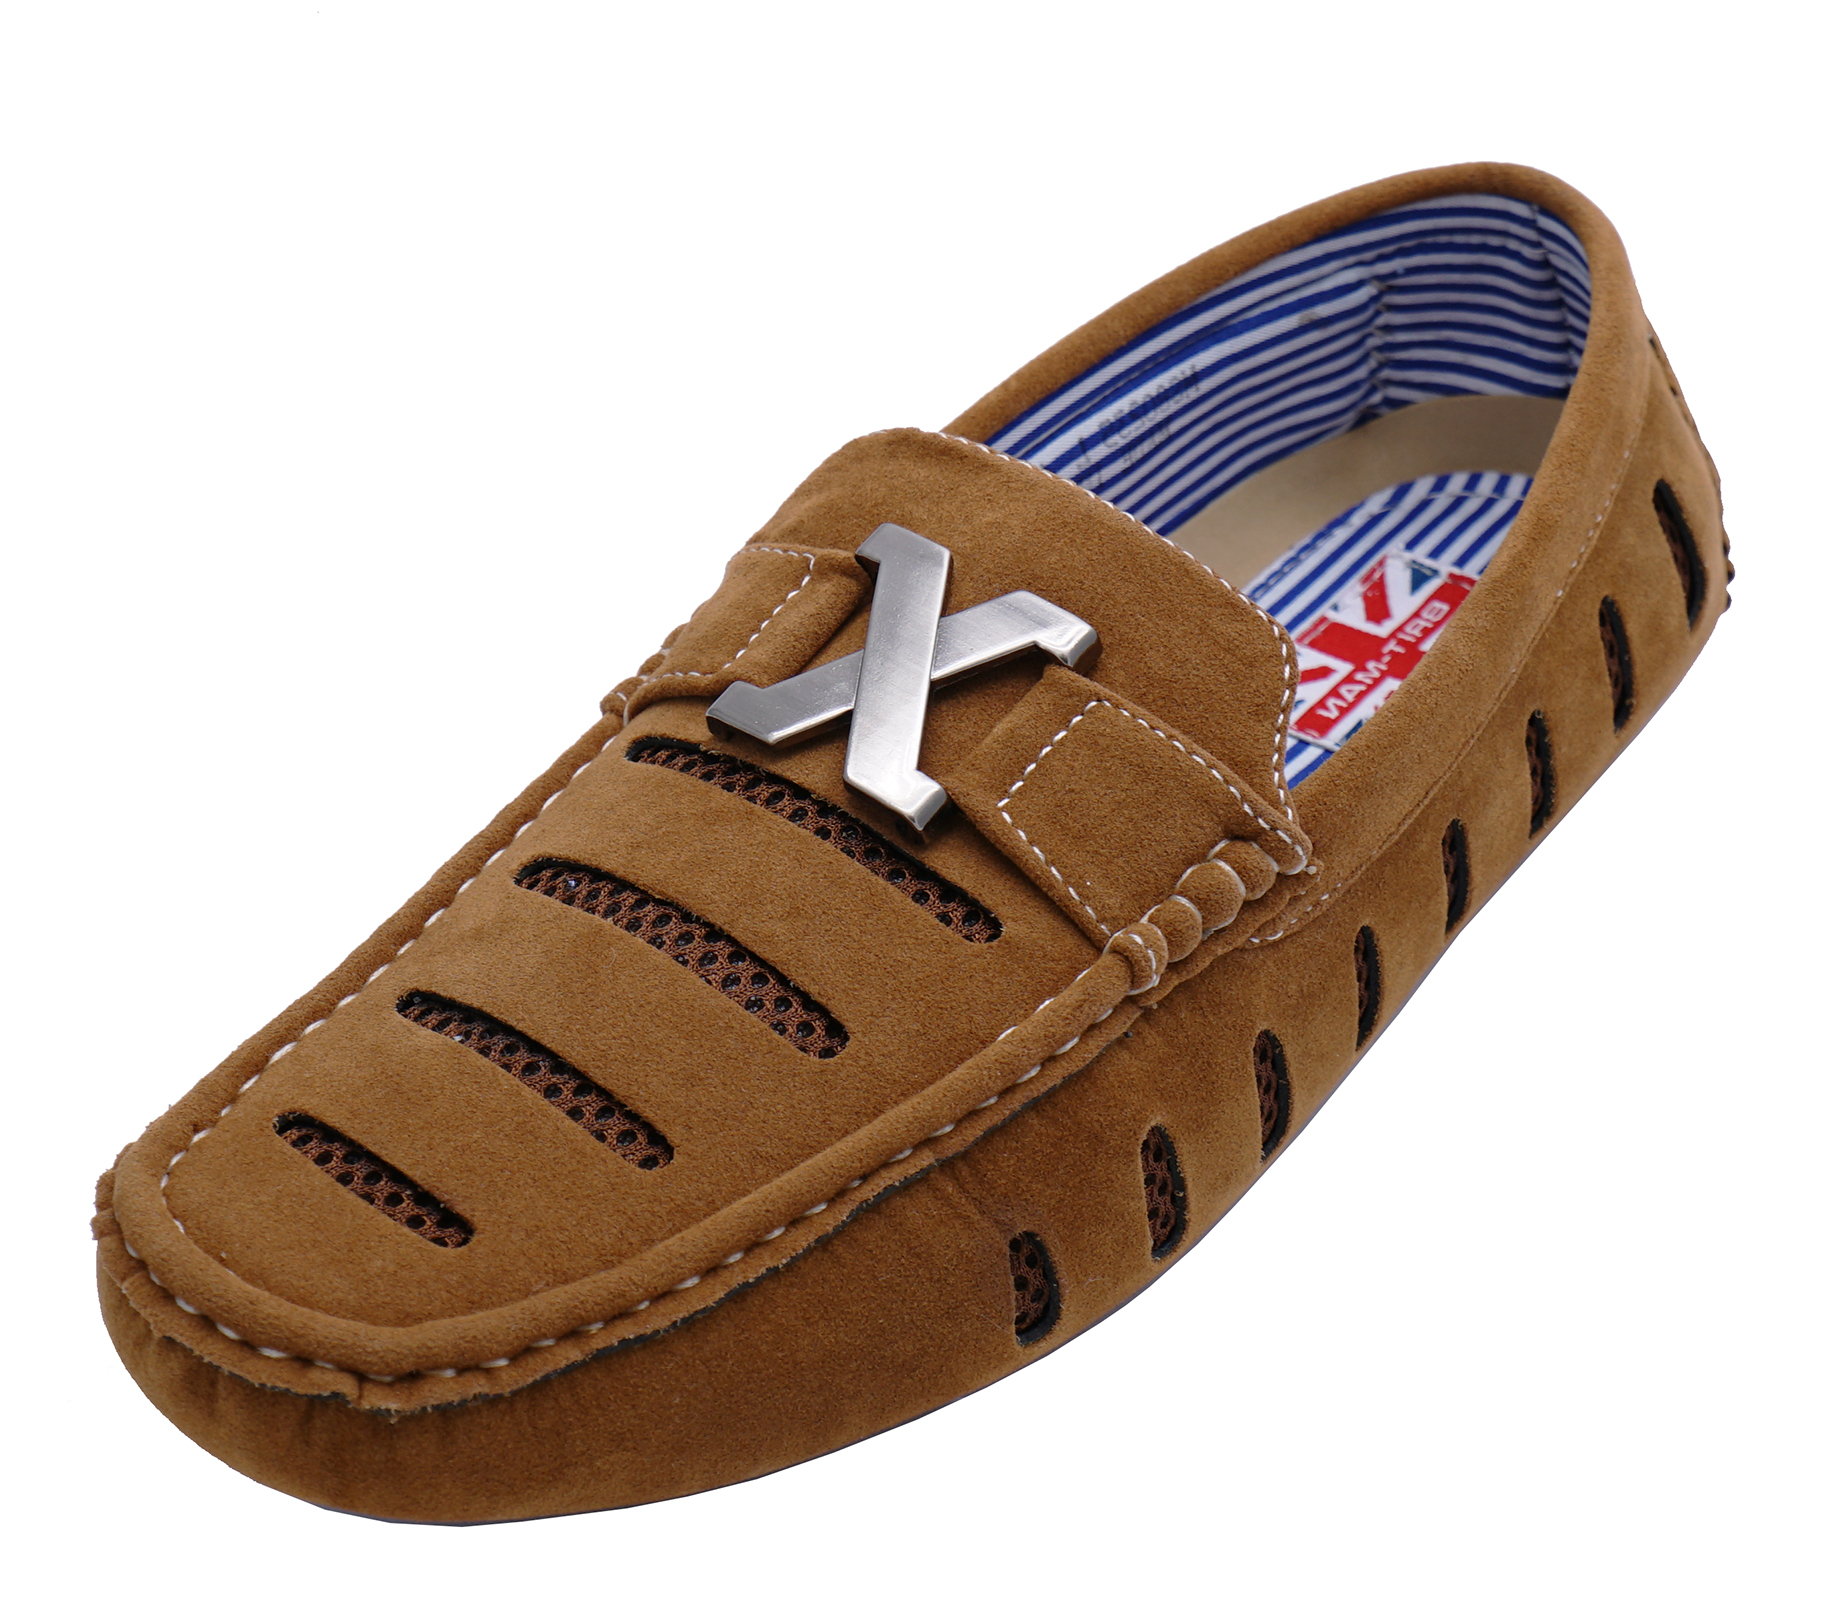 MENS WHITE YACHT LOAFERS DRIVING LACE-UP MOCCASIN DECK CASUAL SMART SHOES 6-11